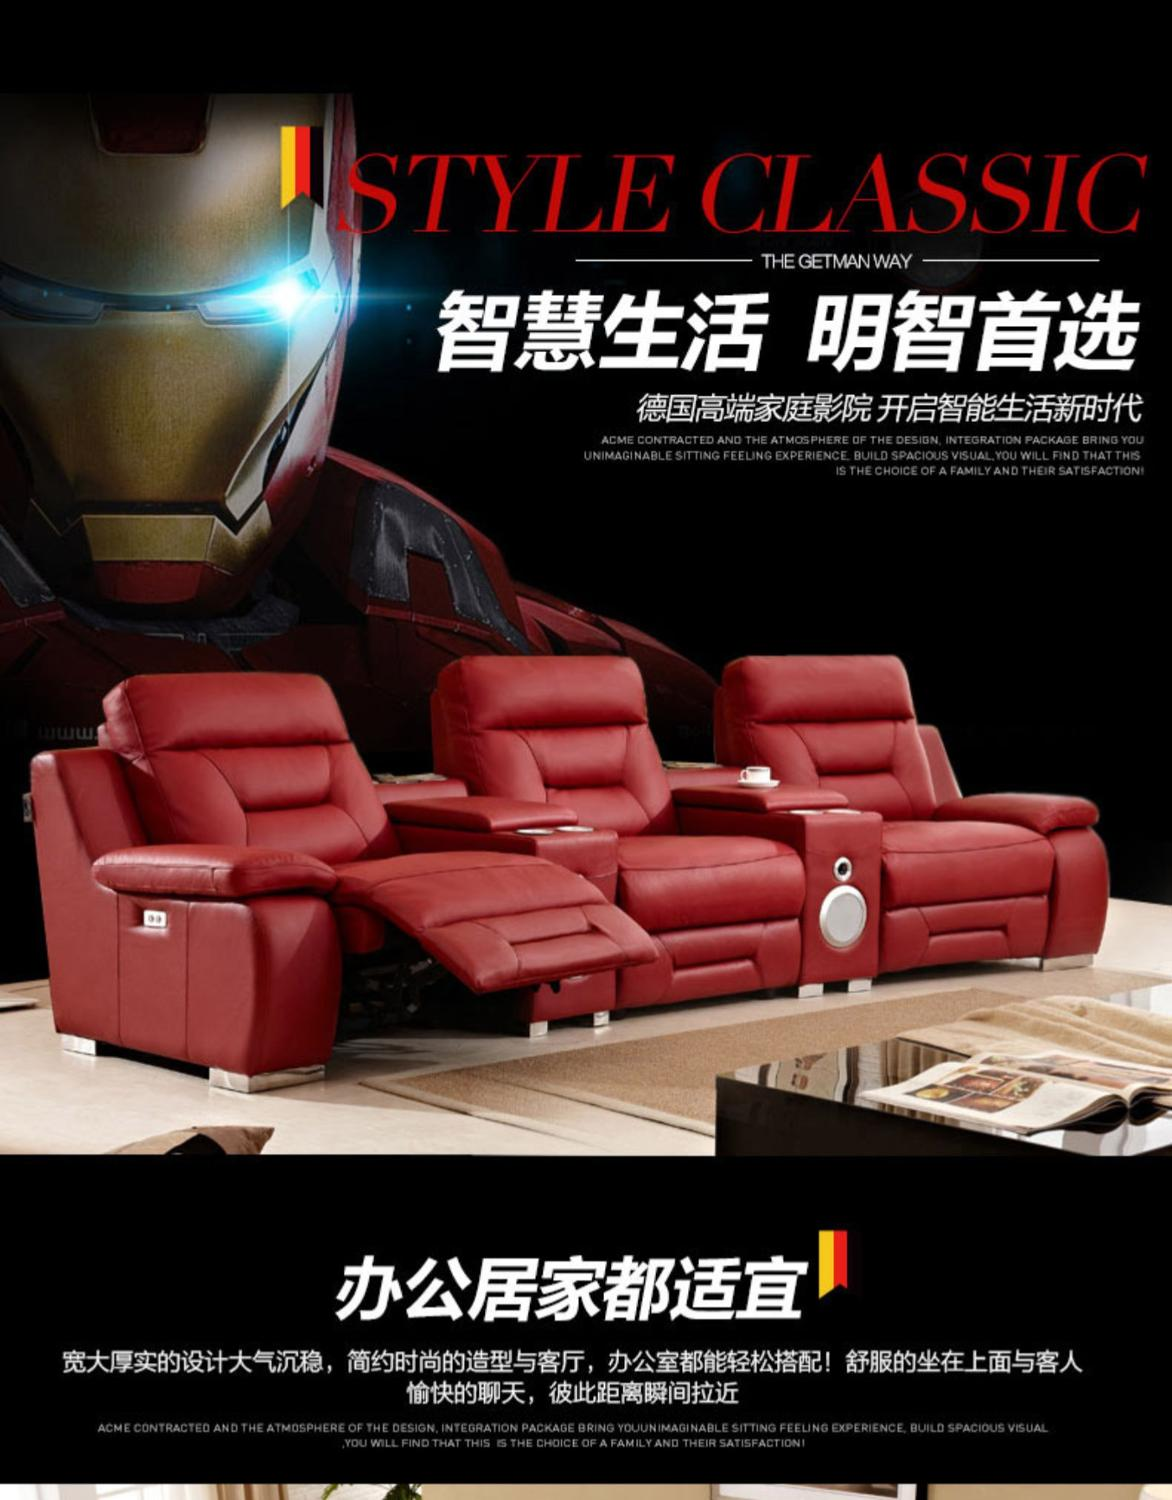 Living Room Sofa Genuine Leather Sofas Electric Recliner Salon Couch Puff Asiento Muebles De Sala Canape 2 Cup Holder +3 Seat